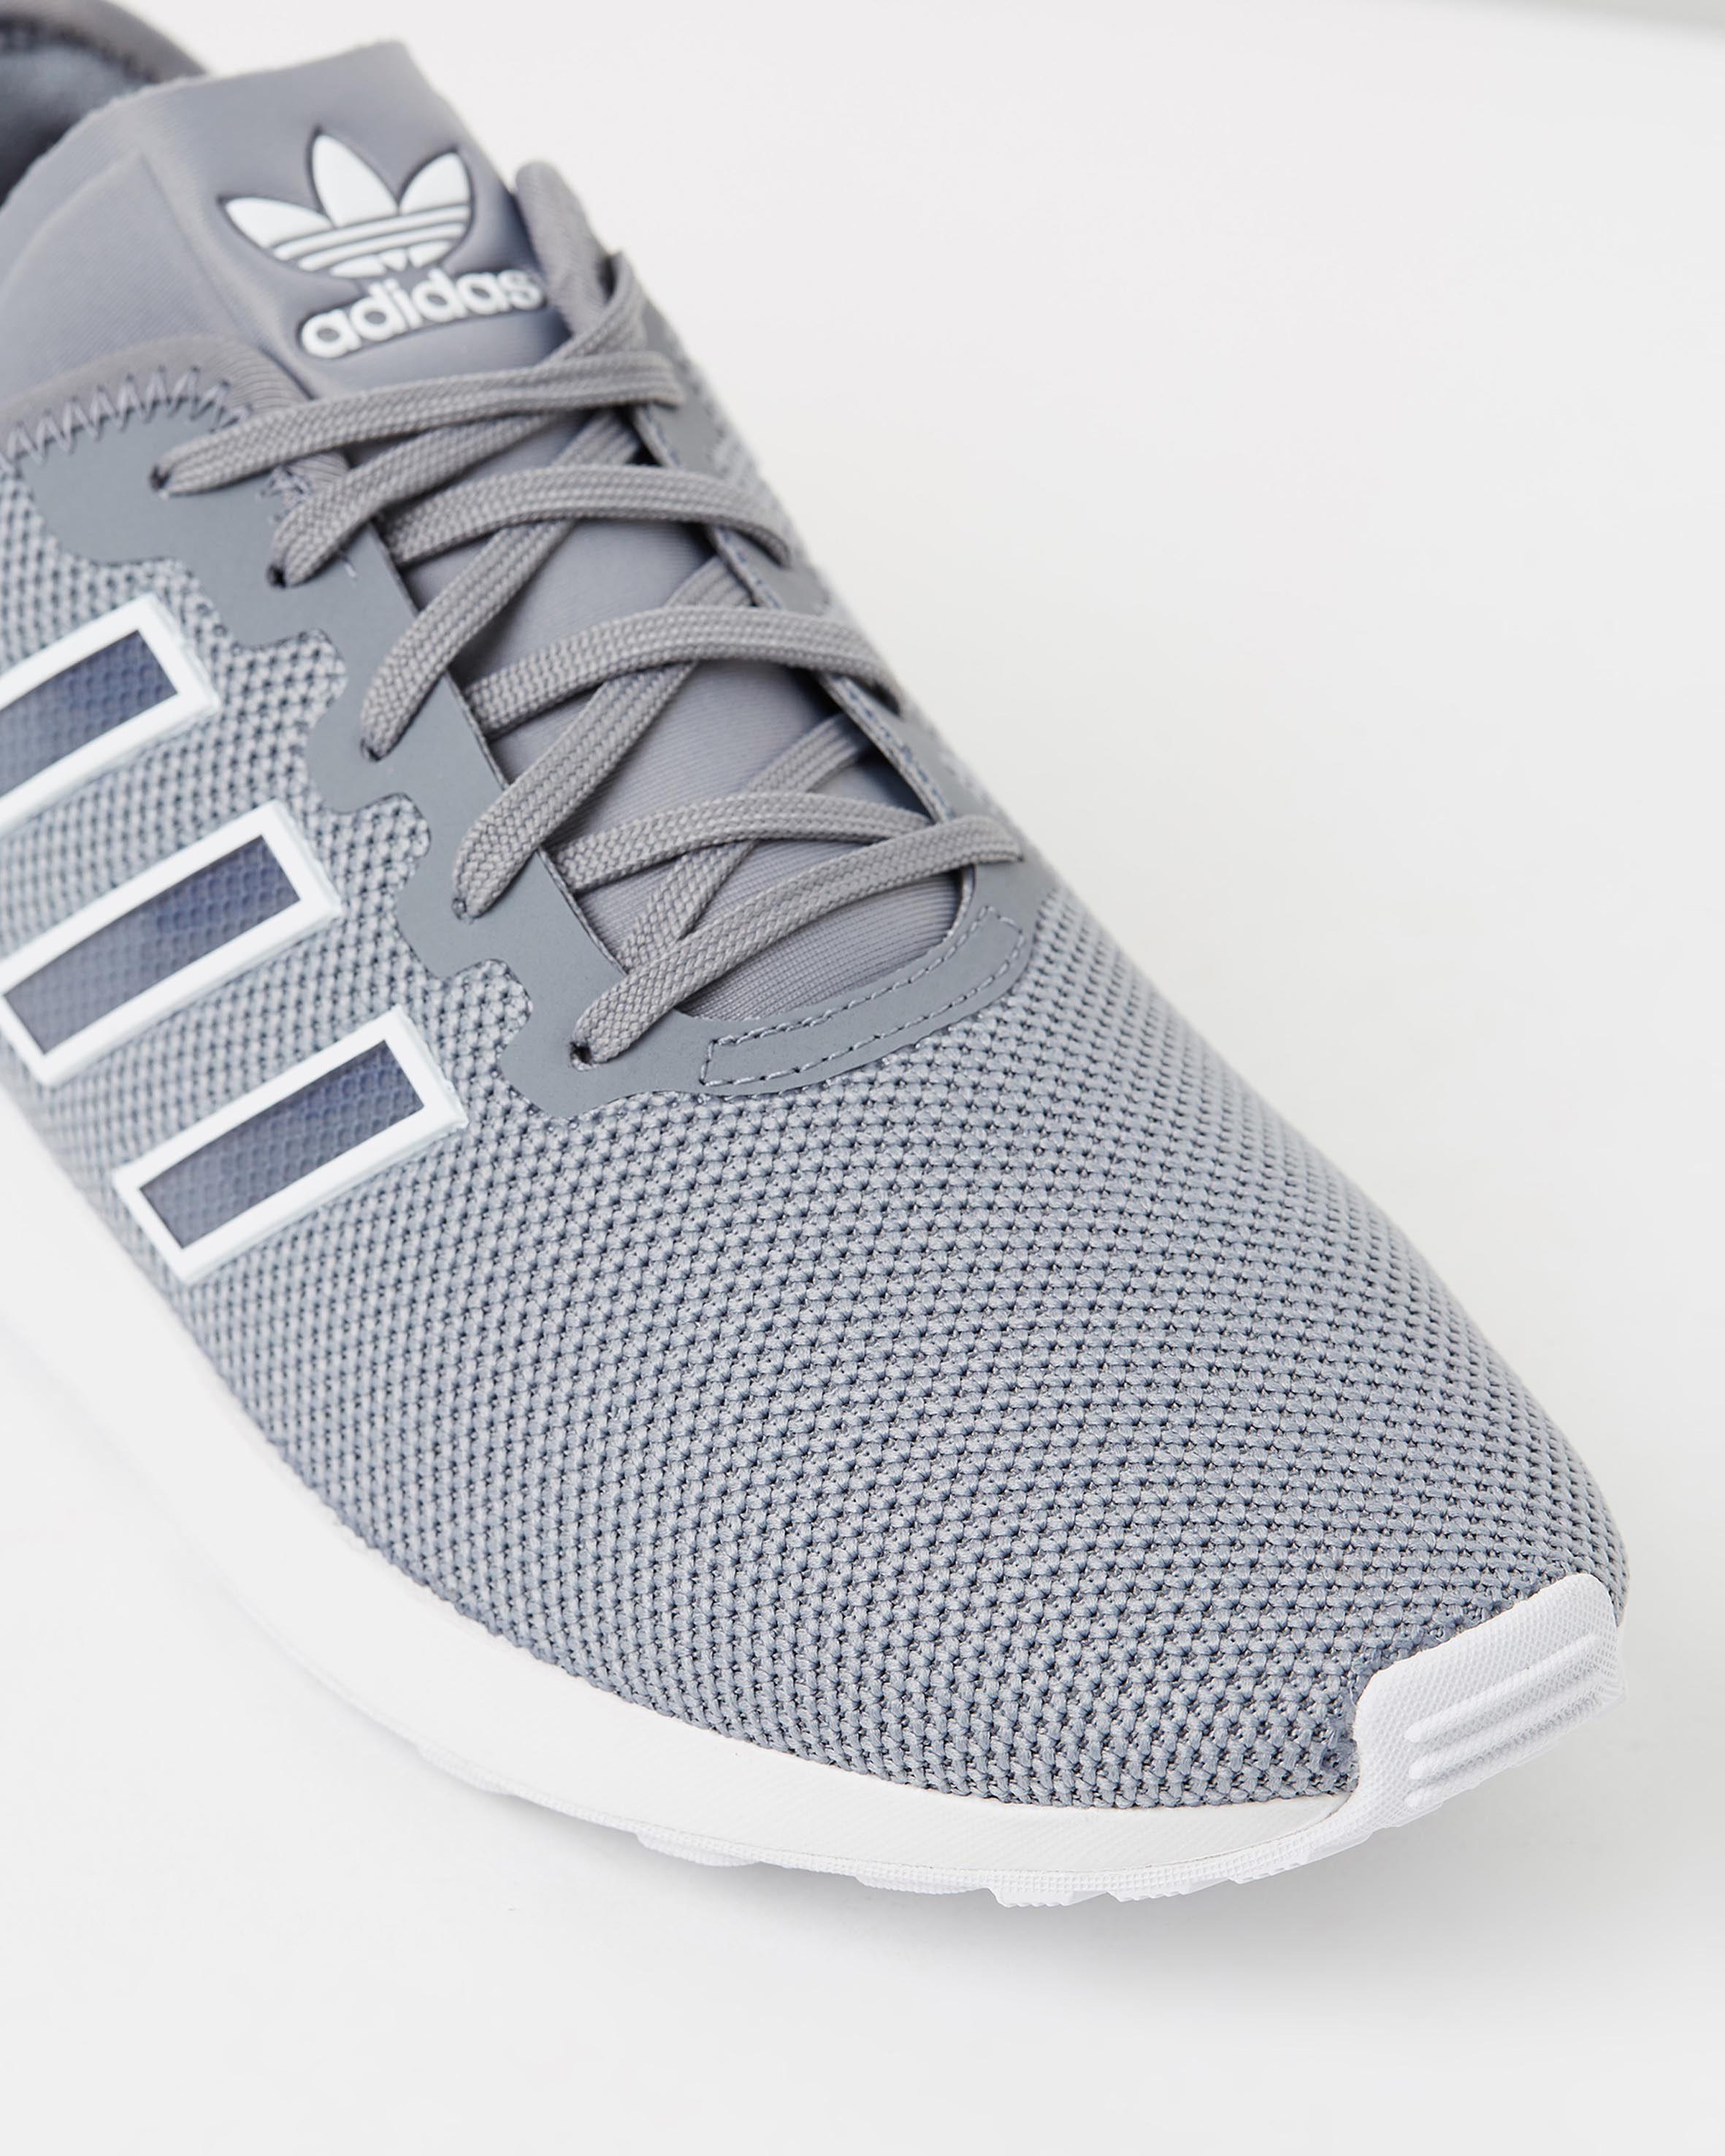 new product 6d054 2b12b Adidas Men's ZX Flux ADV Grey & FTWR White